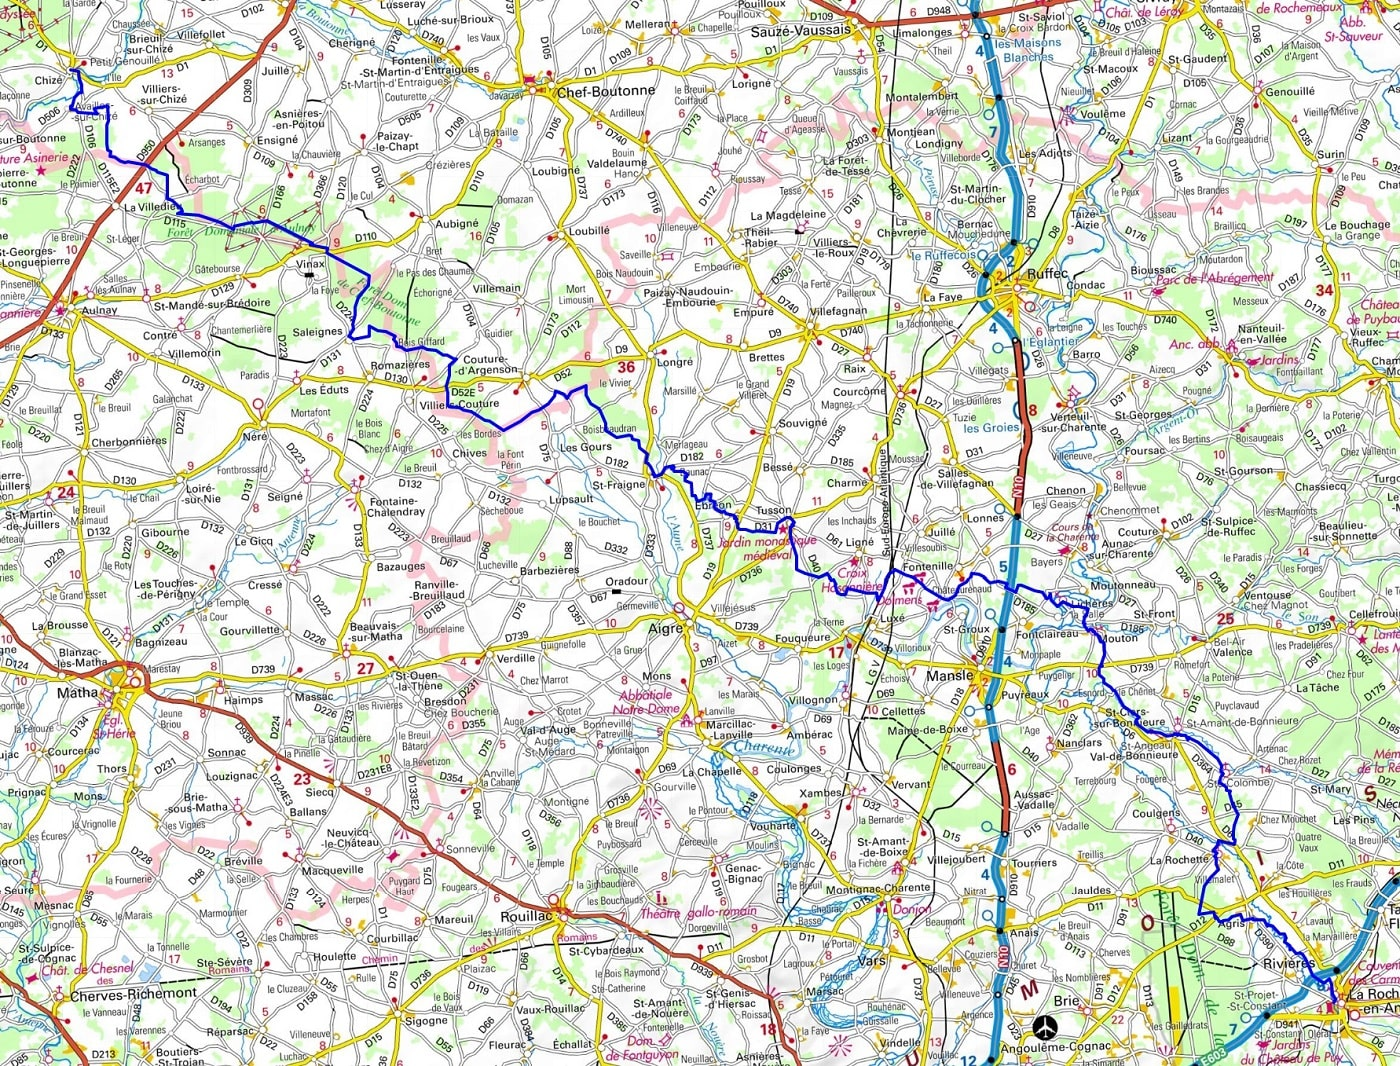 GR36 Hiking from Chize (Deux-Sevres) to La Rochefoucauld (Charente) 1